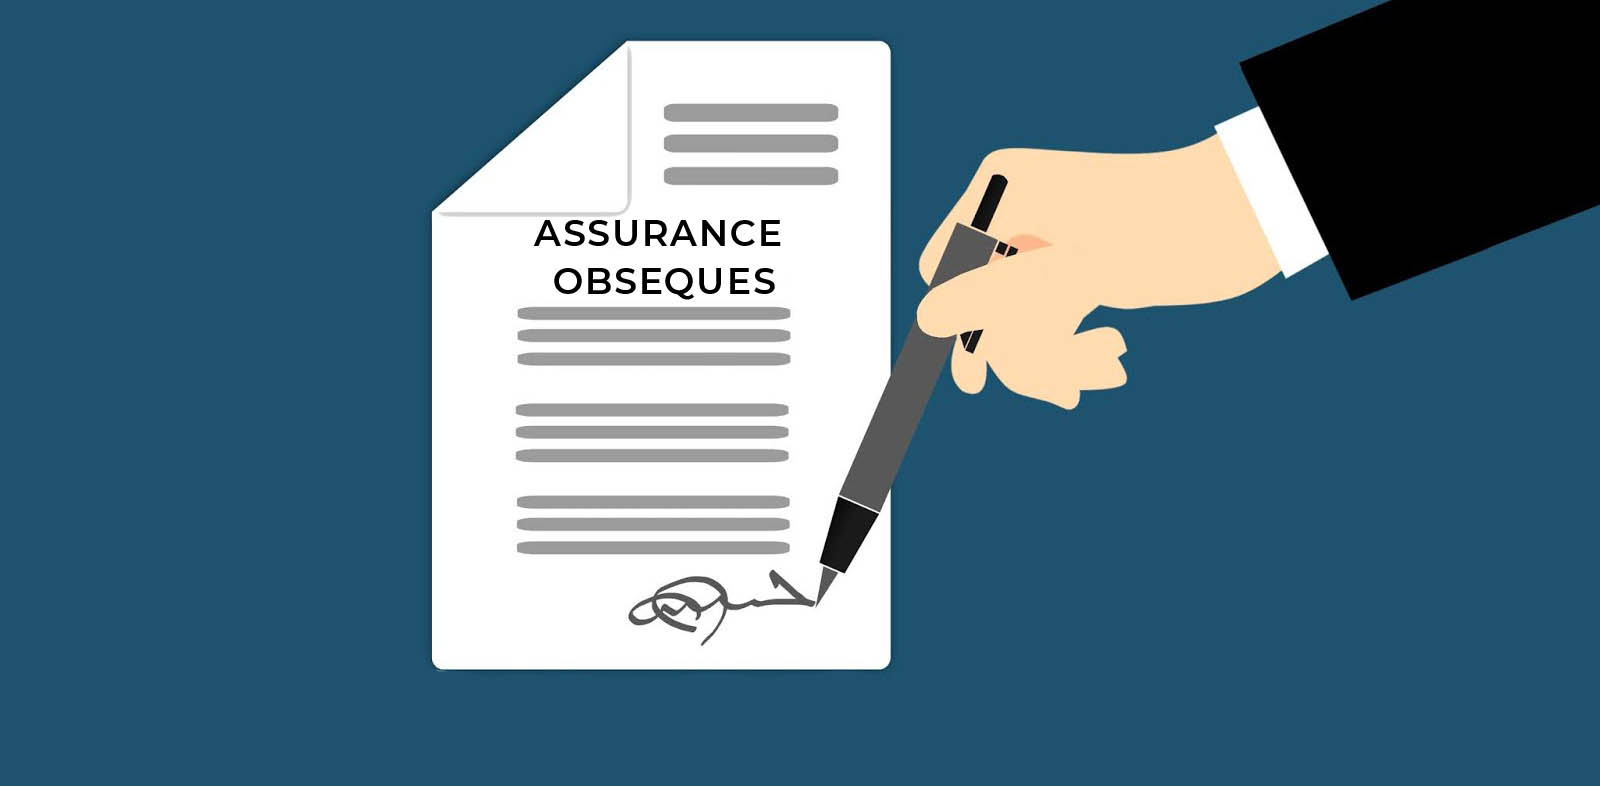 Signature Assurance Obseque Illustration